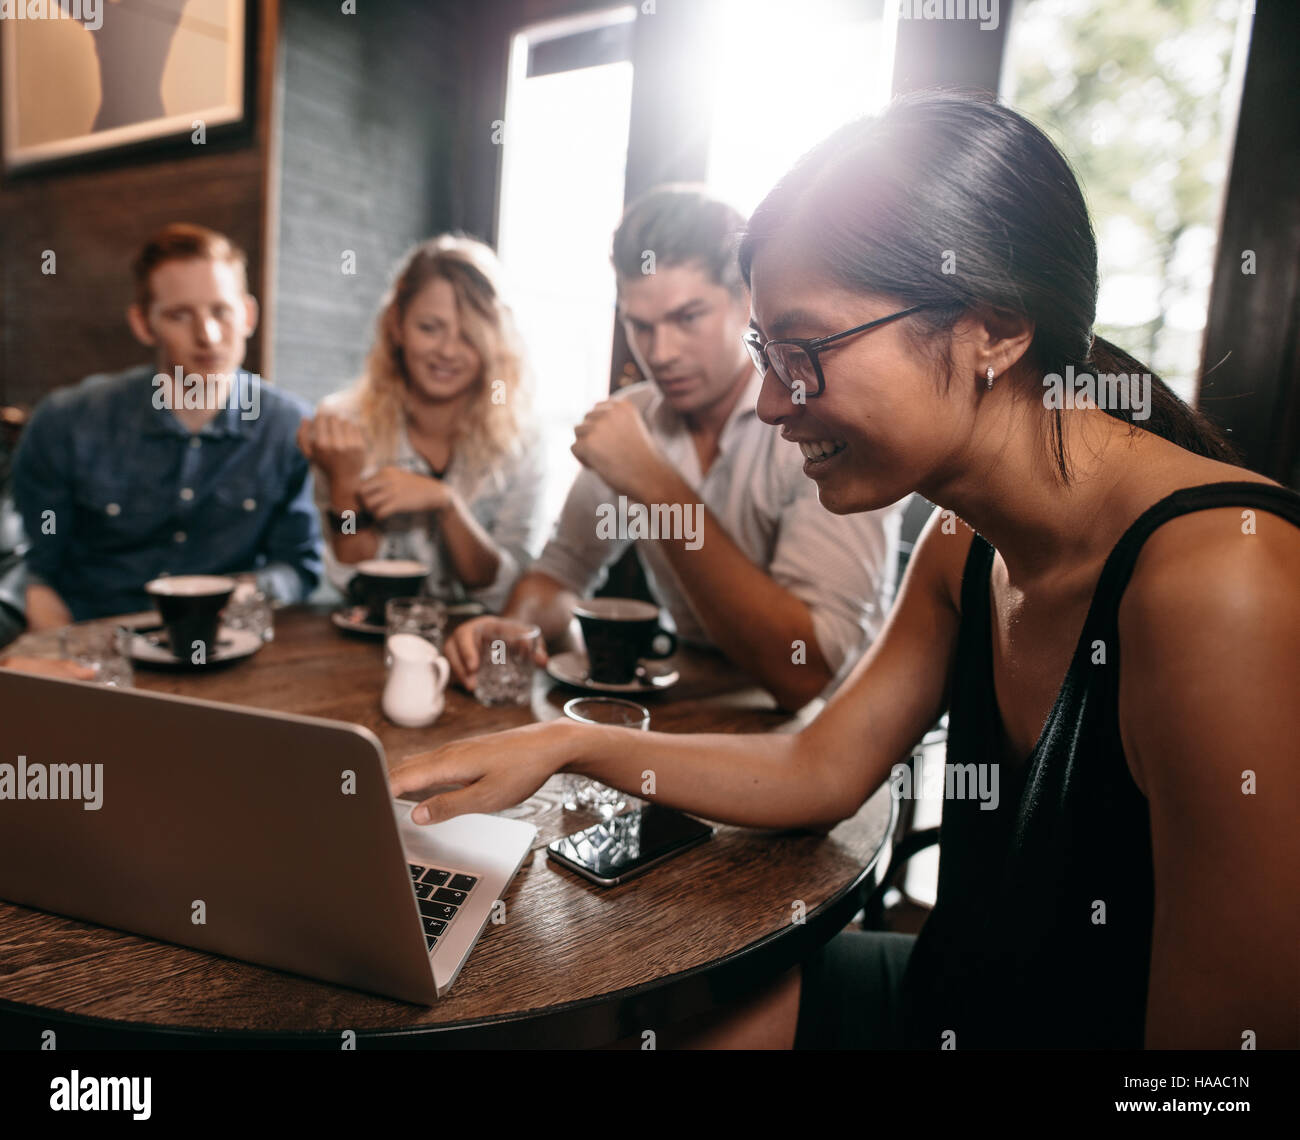 Group of friends in cafe watching something online on laptop. Young men and women at restaurant looking at laptop. - Stock Image